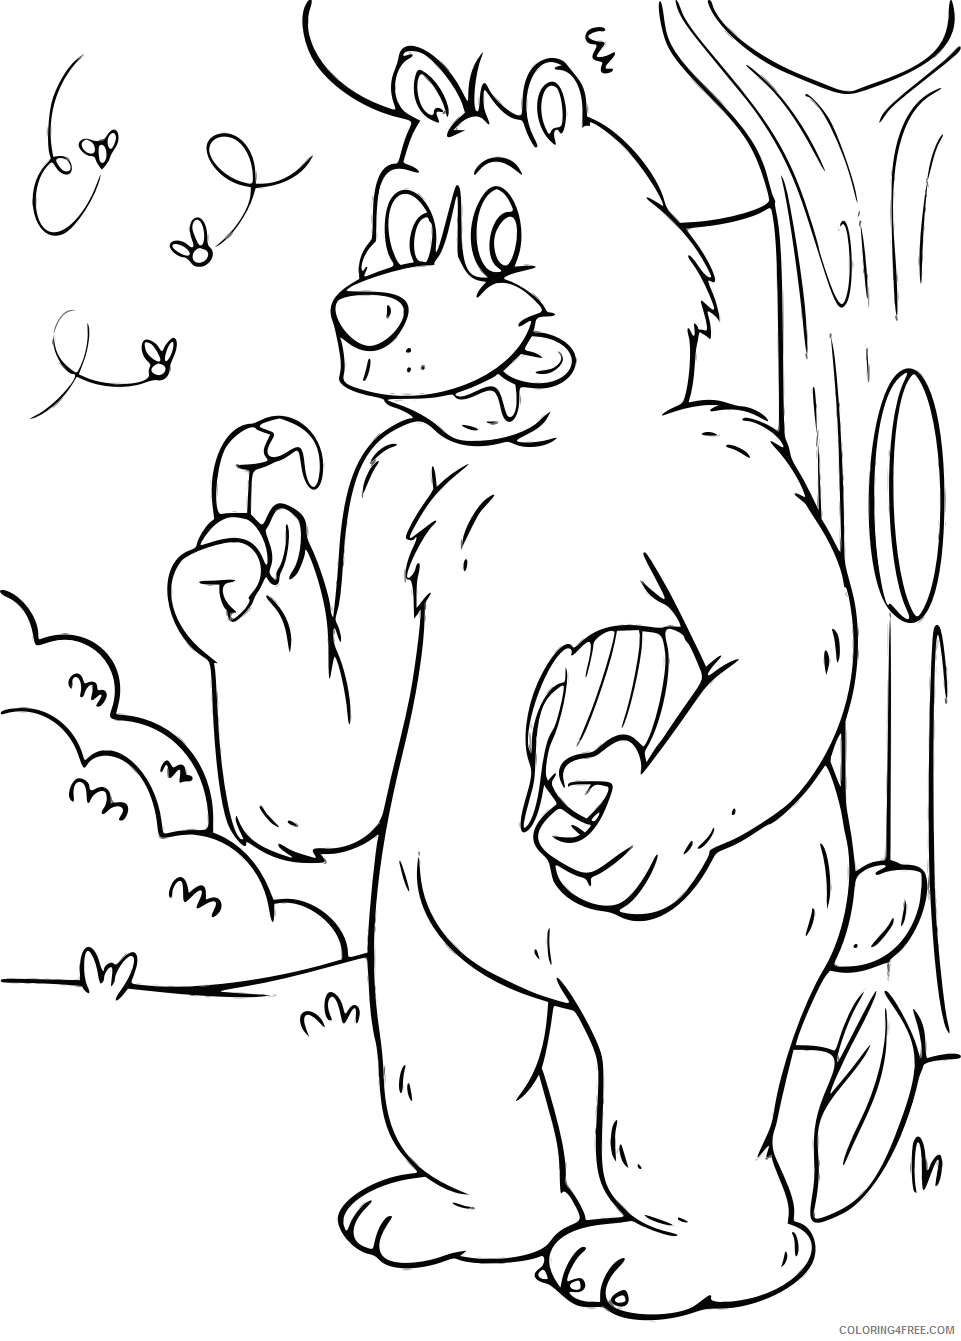 High Quality Bear Coloring Pages bear 3 bpng Printable Coloring4free